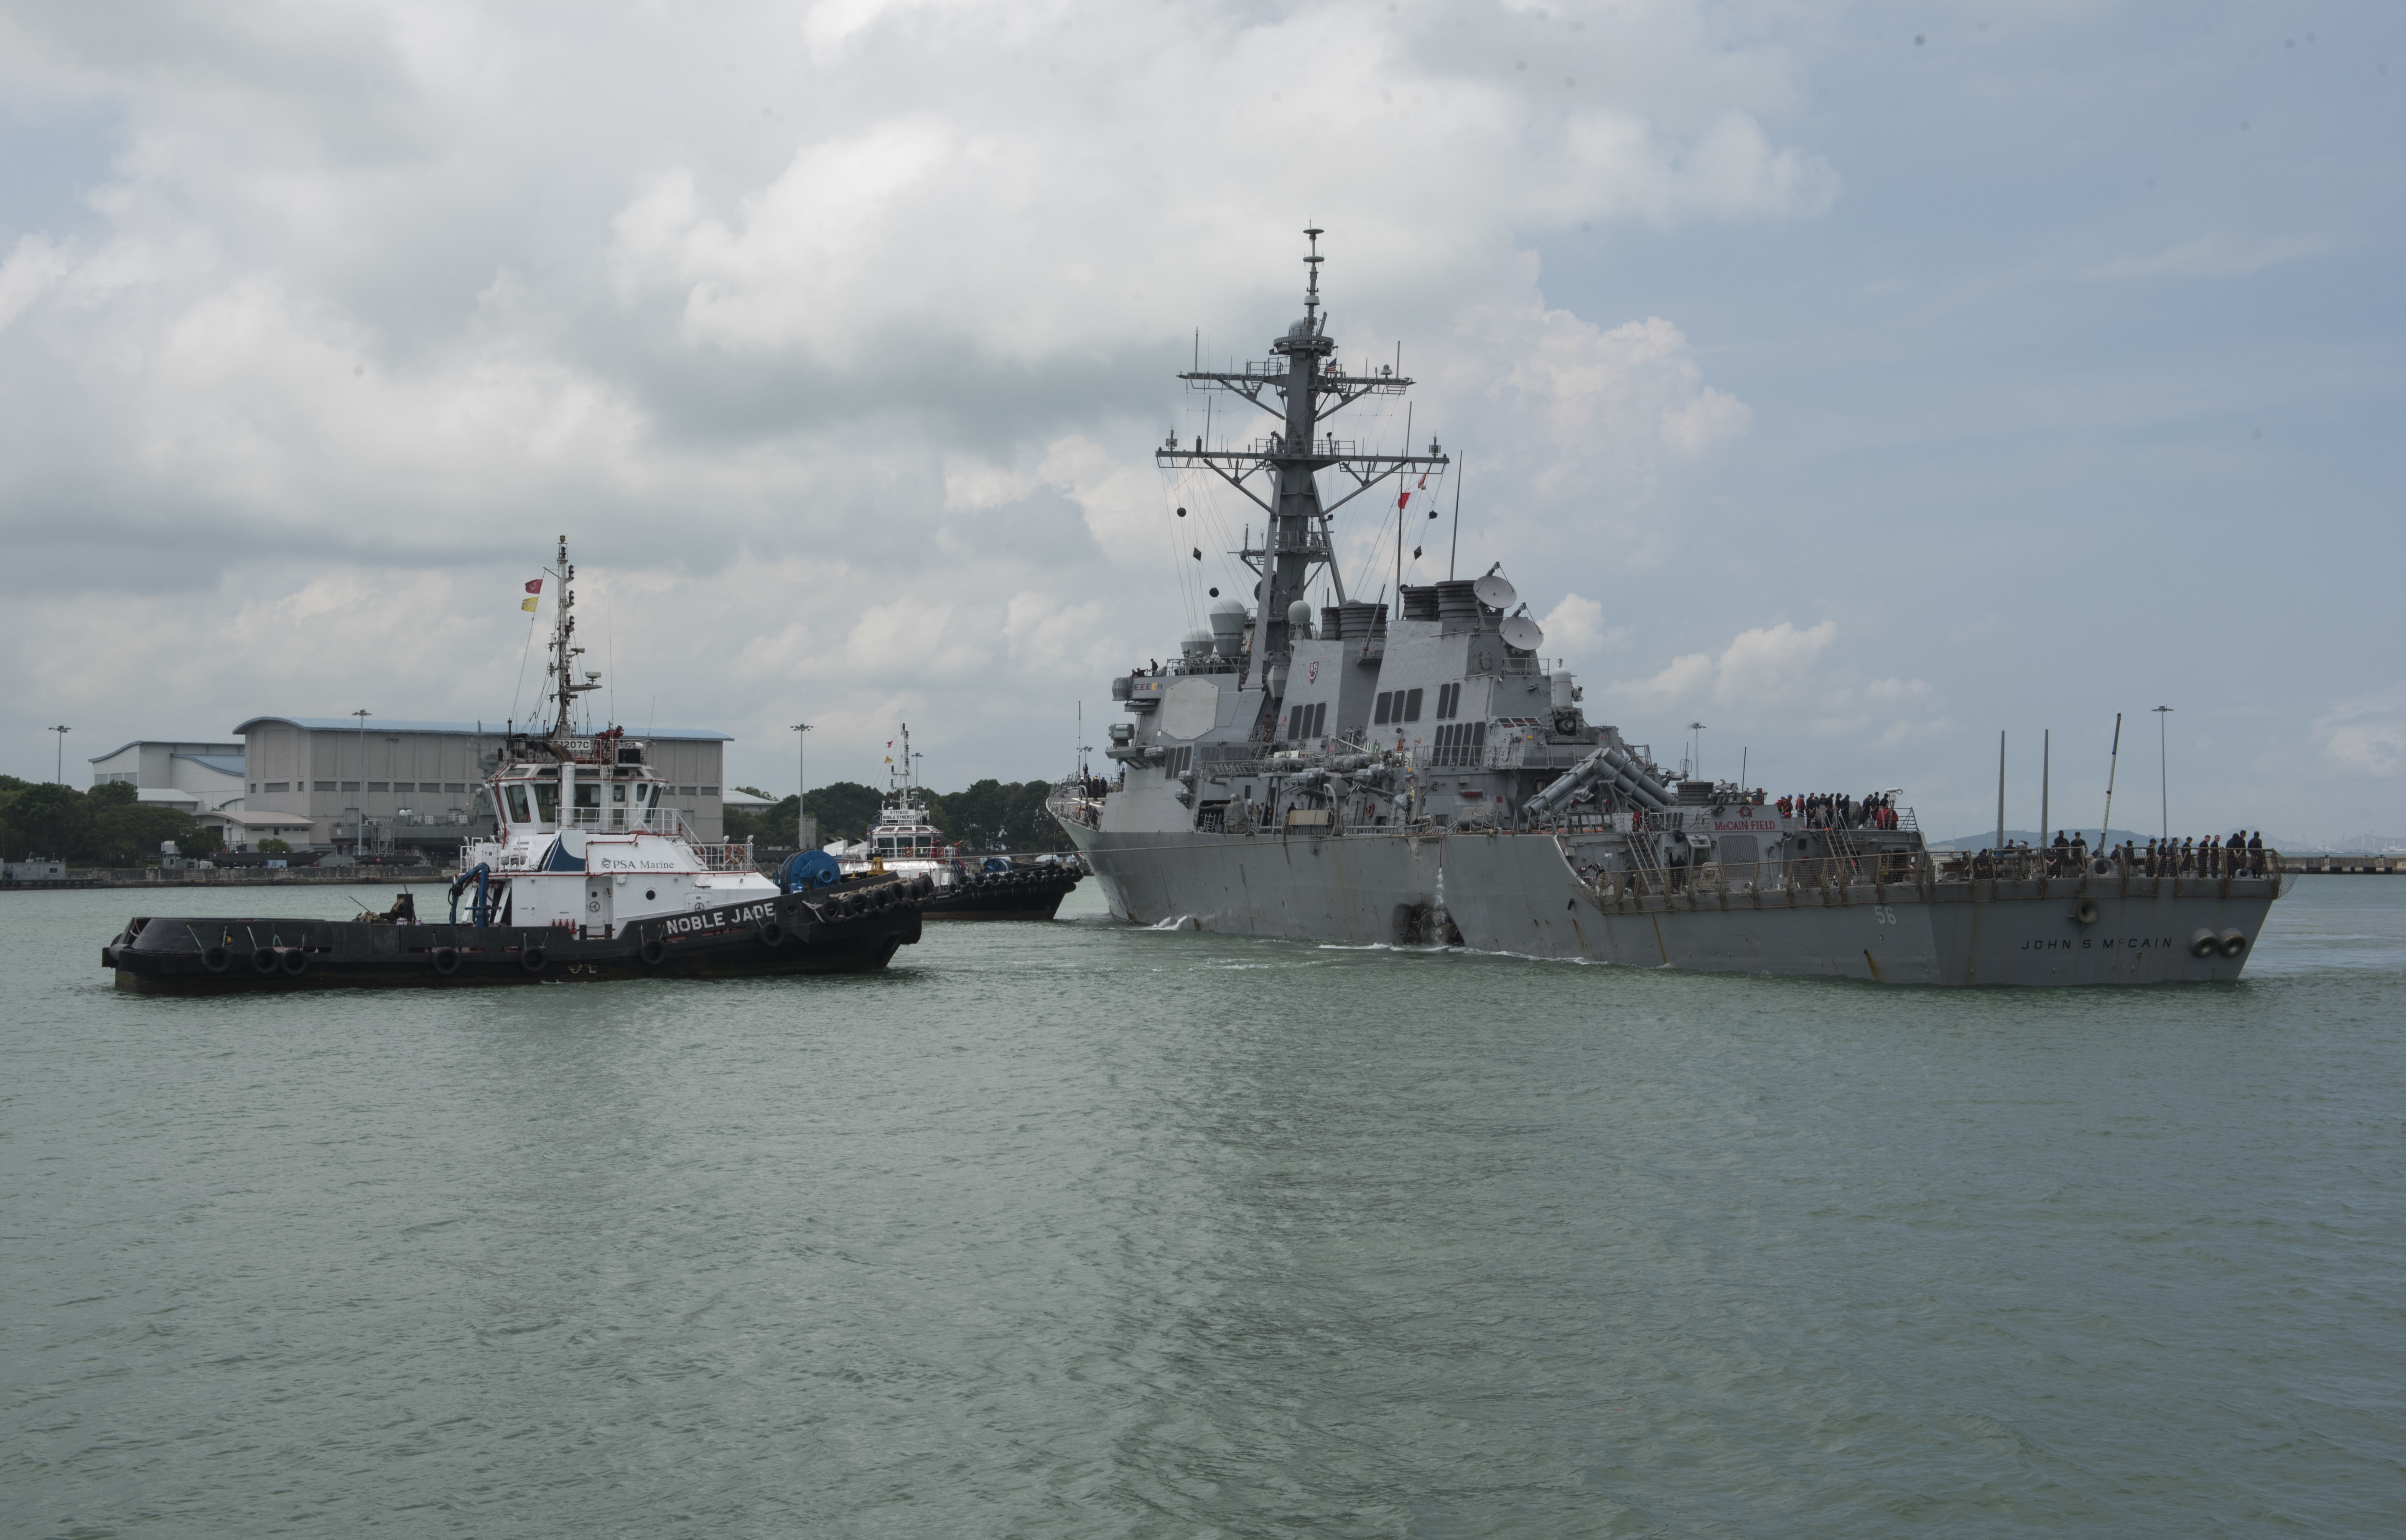 Singapore US Navy Ship Collision In this Aug. 21, 2017, photo provided by the U.S. Navy, the guided-missile destroyer USS John S. McCain (DDG 56) steers towards the Changi Naval Base, Singapore, following a collision with the merchant vessel Alnic MC while underway east of the Straits of Malacca and Singapore. Navy and Marine Corps divers will enter flooded compartments on the USS John S. McCain to search for 10 sailors missing after the destroyer and an oil tanker collided in Southeast Asian waters, the 7th Fleet said Tuesday, Aug. 22, 2017. (Mass Communication Specialist 2nd Class Joshua Fulton/U.S. Navy via AP)